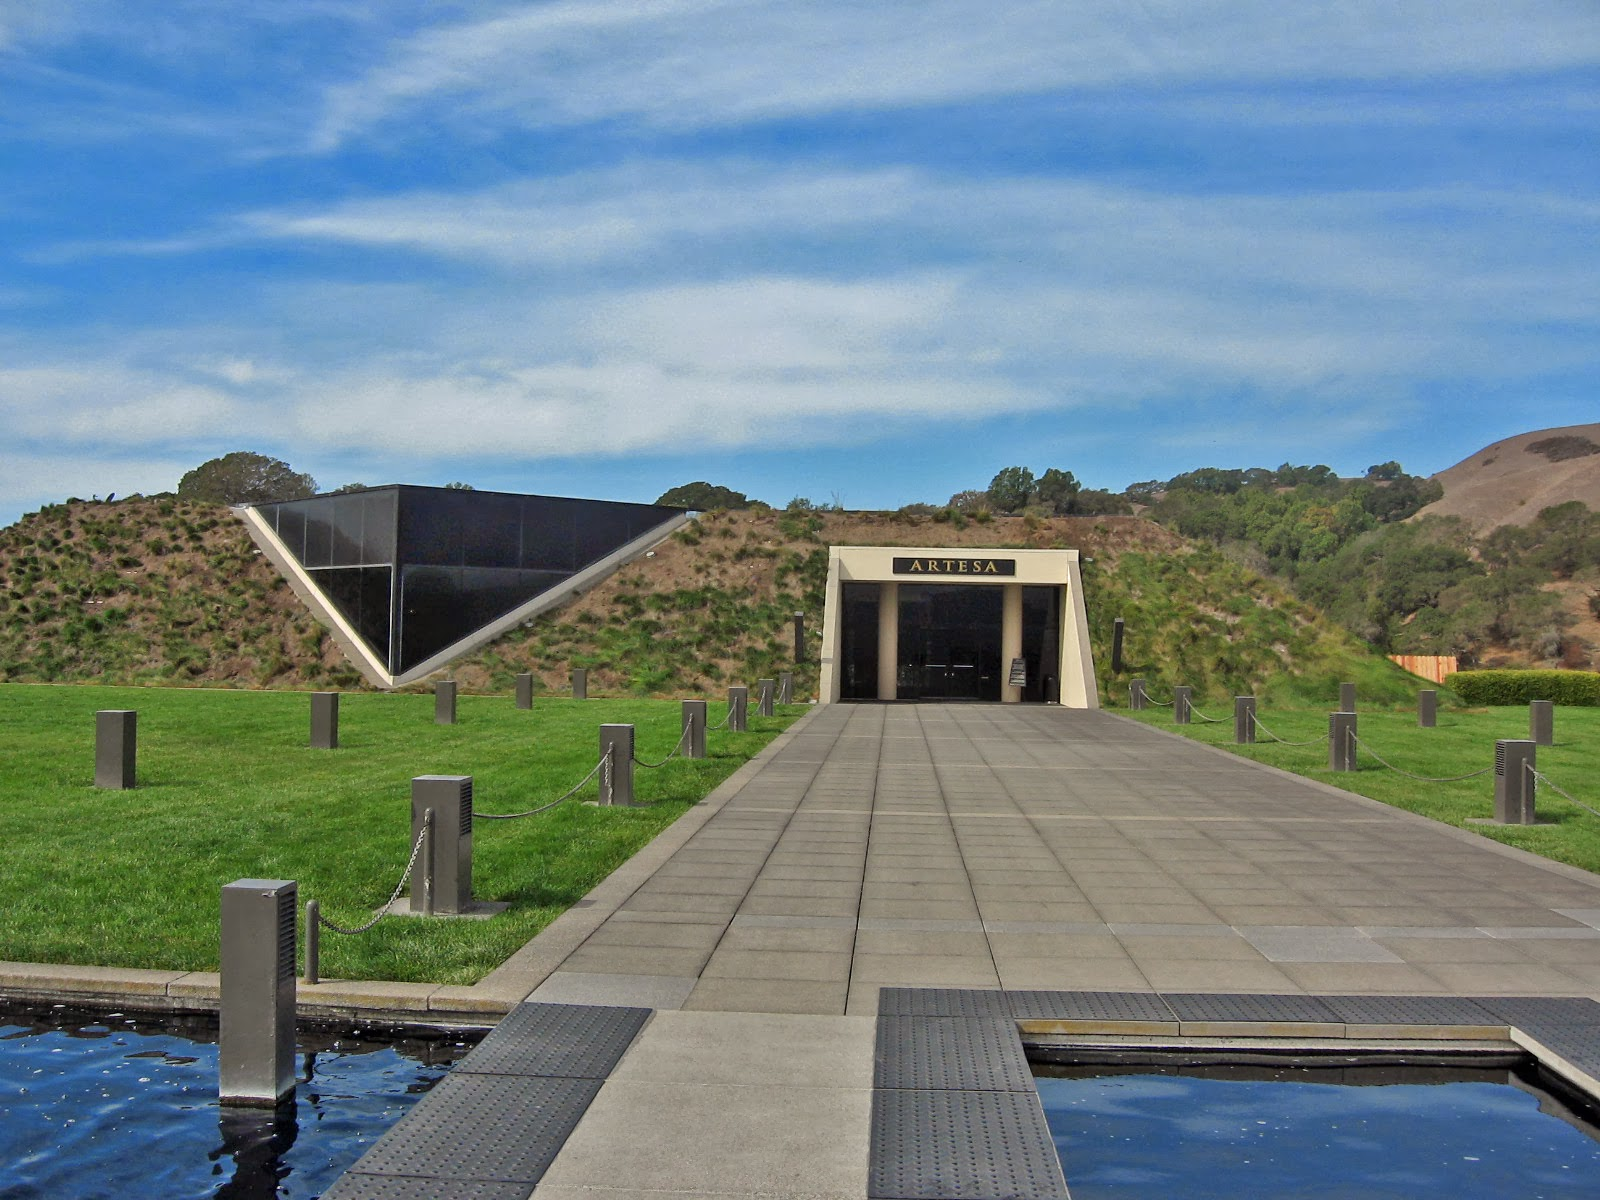 Bach to Bacchus: Artesa Vineyards and Winery Revisited